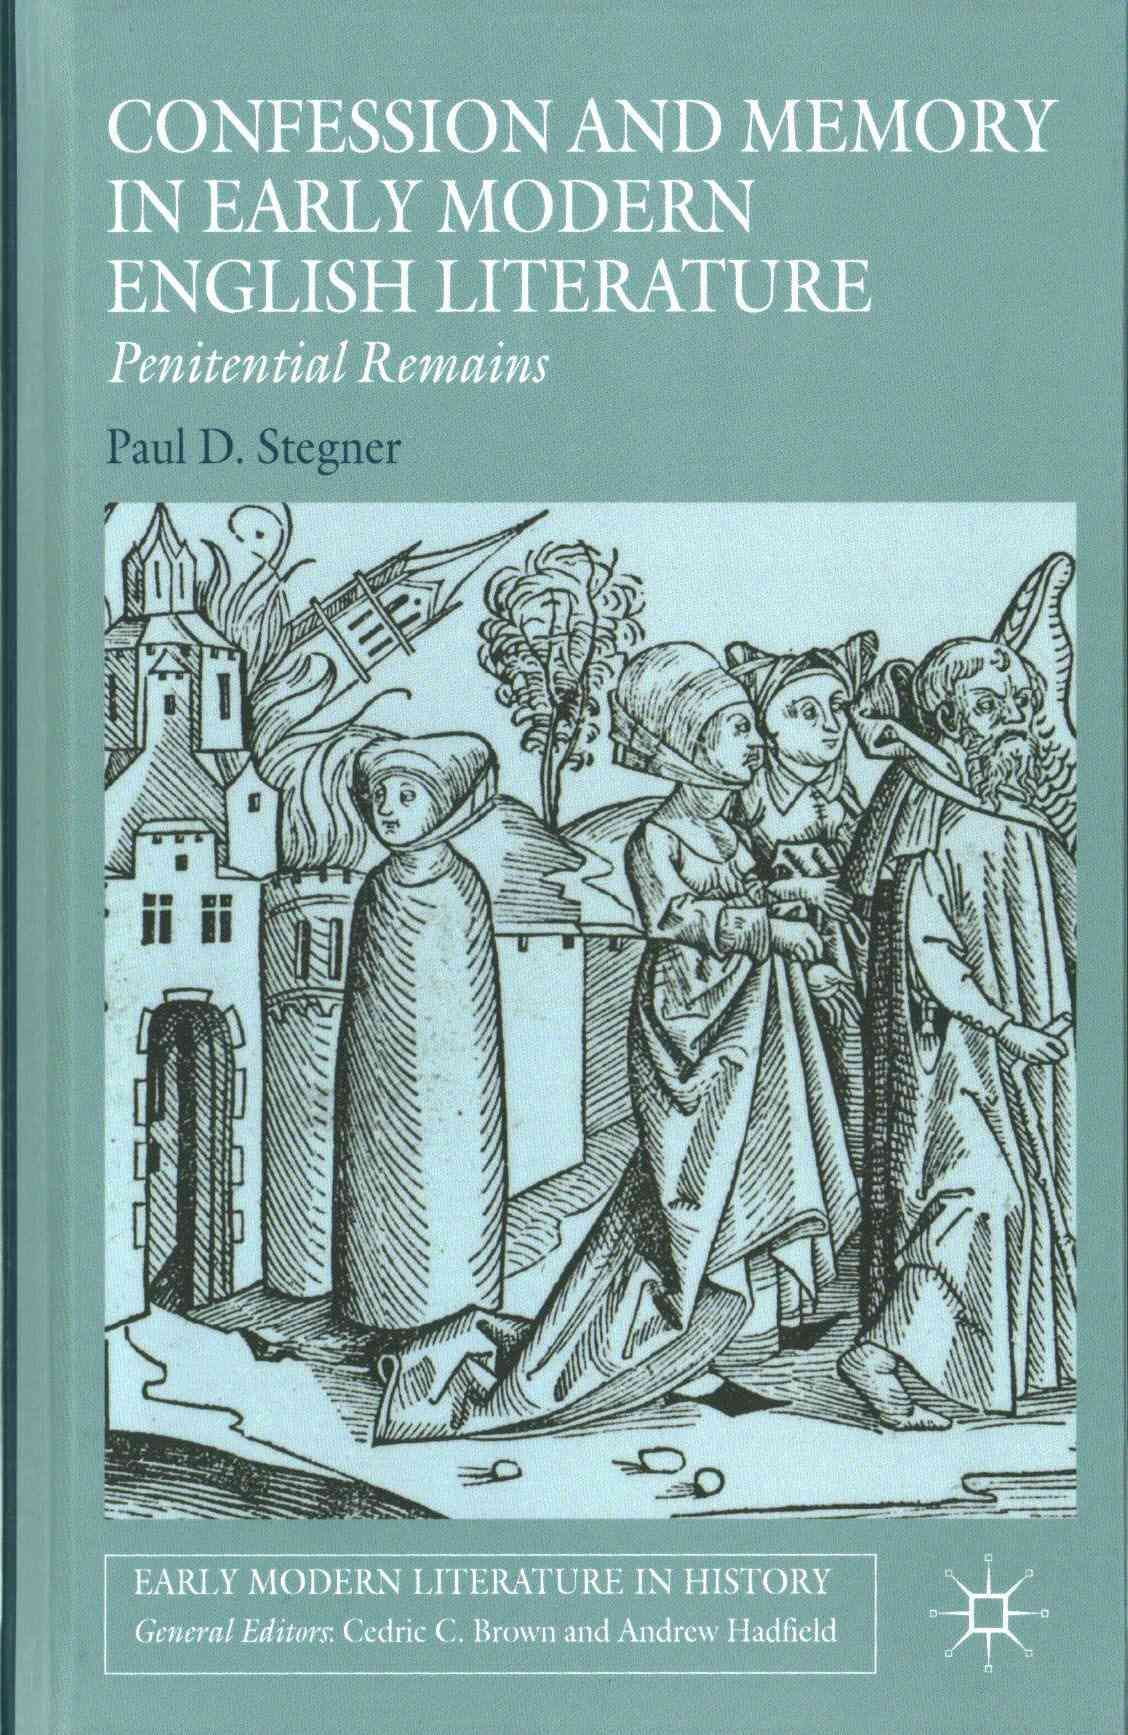 The Poetics of Conversion in Early Modern English Literature: Verse and Change from Donne to Dryden